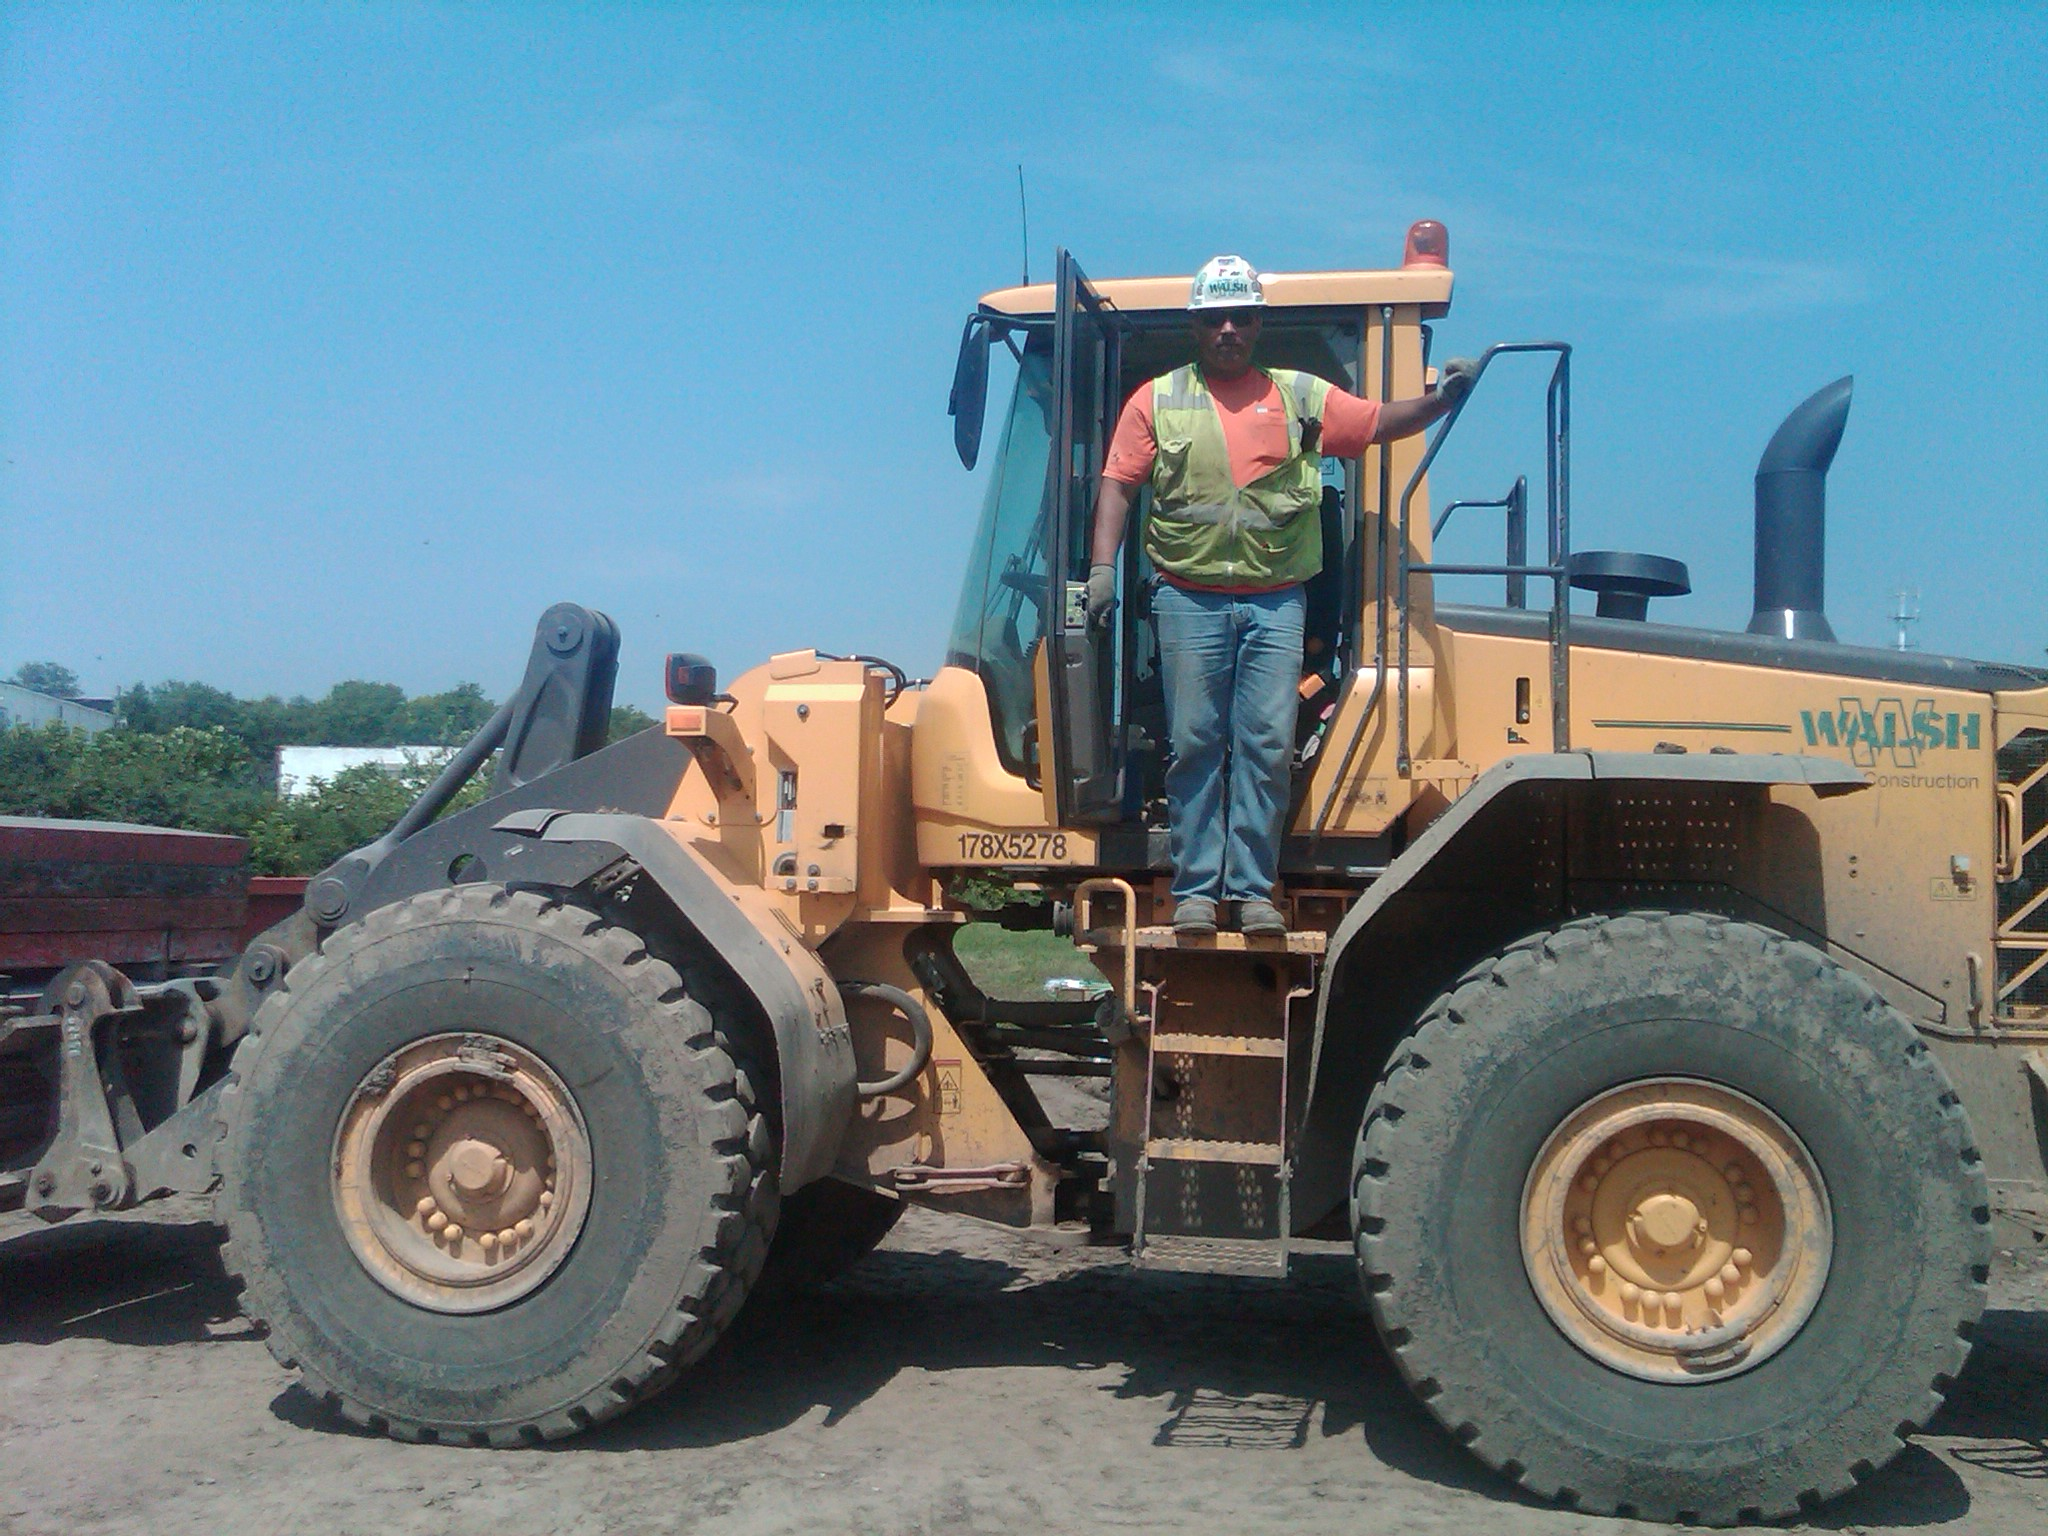 Tim Thomas stands on his Walsh loader at the I465 job